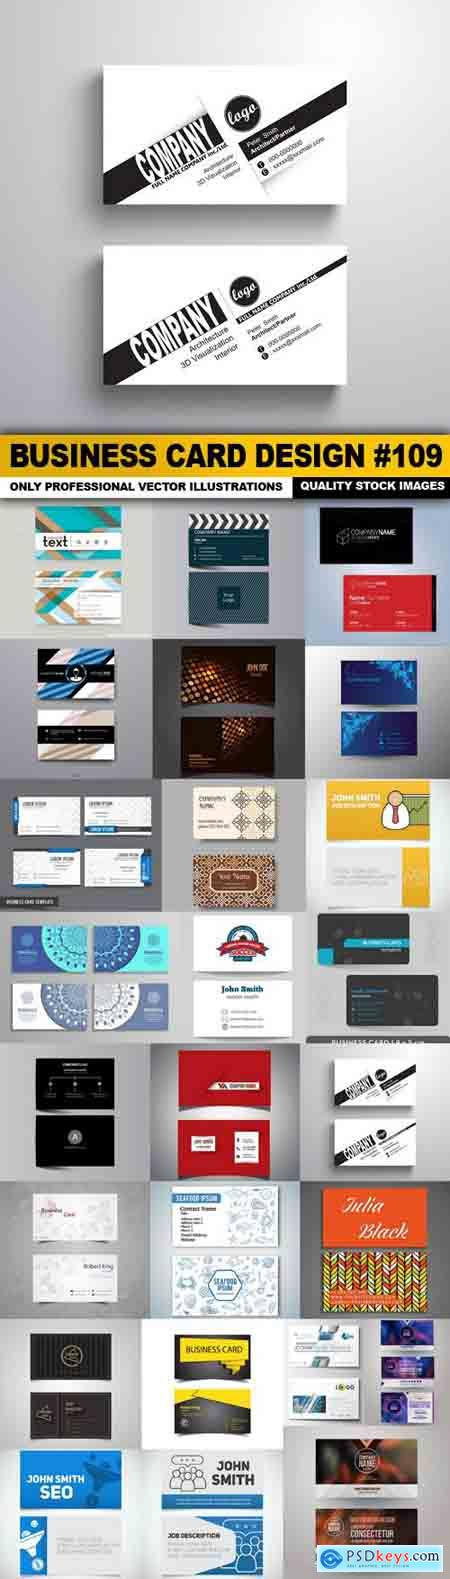 Business Card Design #109 - 25 Vector